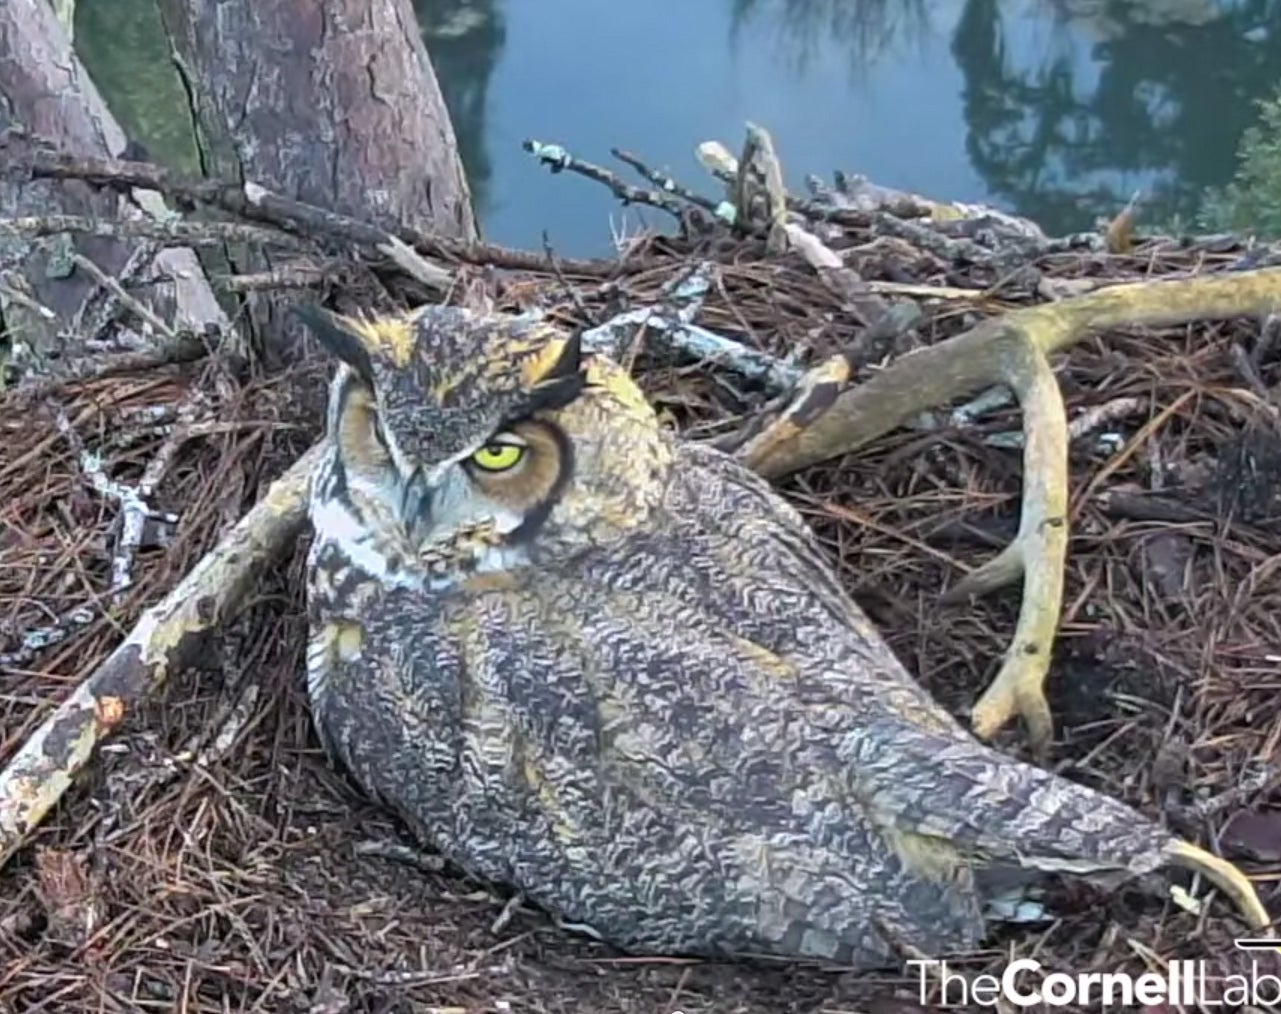 Watch These Great Horned Owls Eat, Sleep, And Look Majestic [Video]